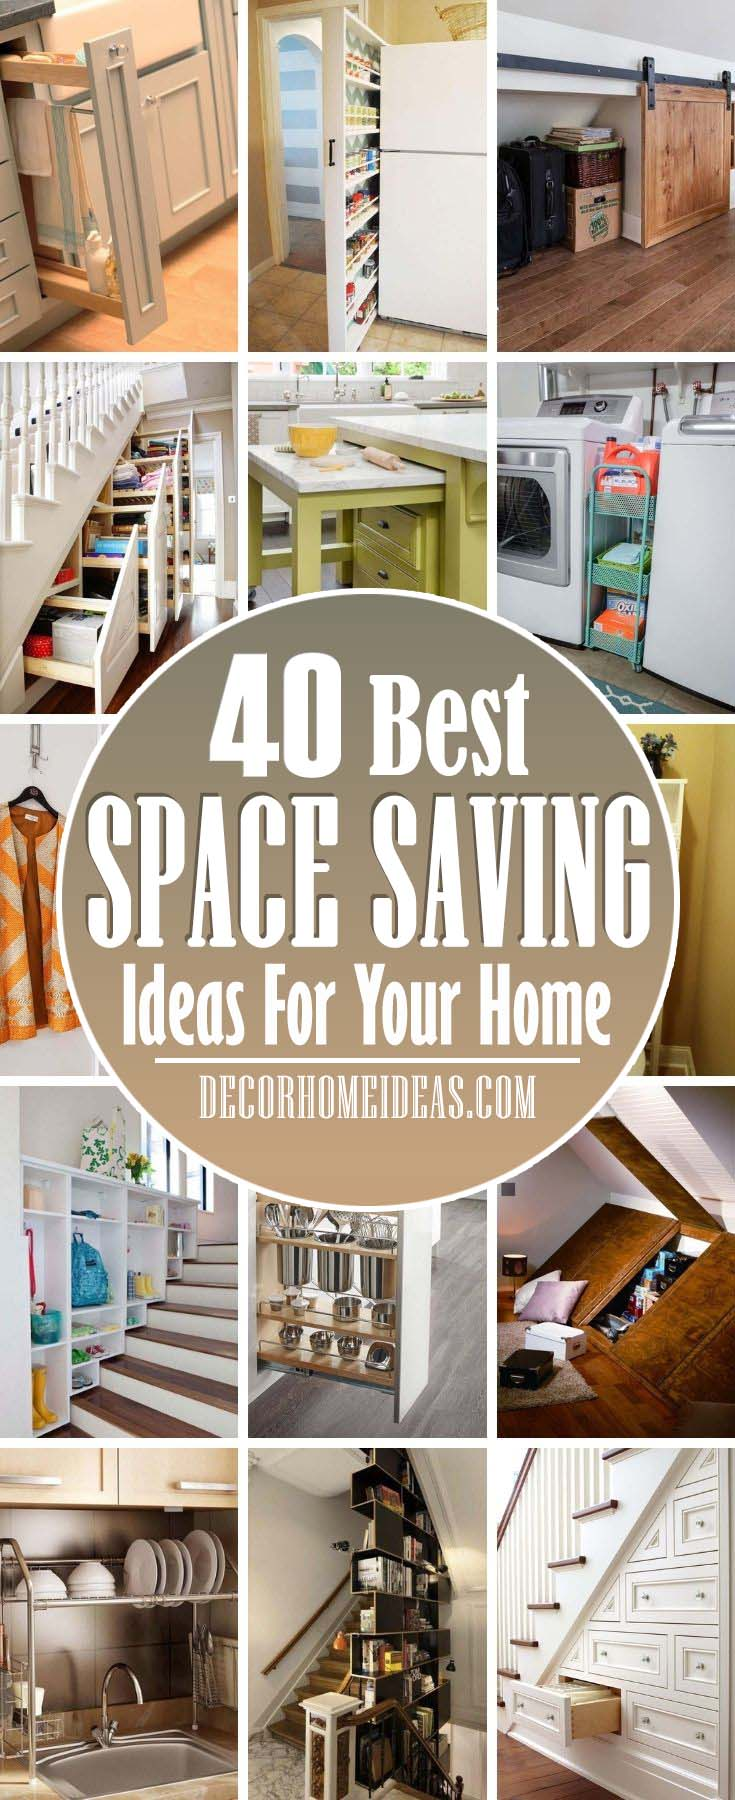 Best Space Saving Ideas. Saving space and organizing the mess at home is really easy with these ingenious space saving ideas. Quickly declutter and free up more space! #decorhomeideas